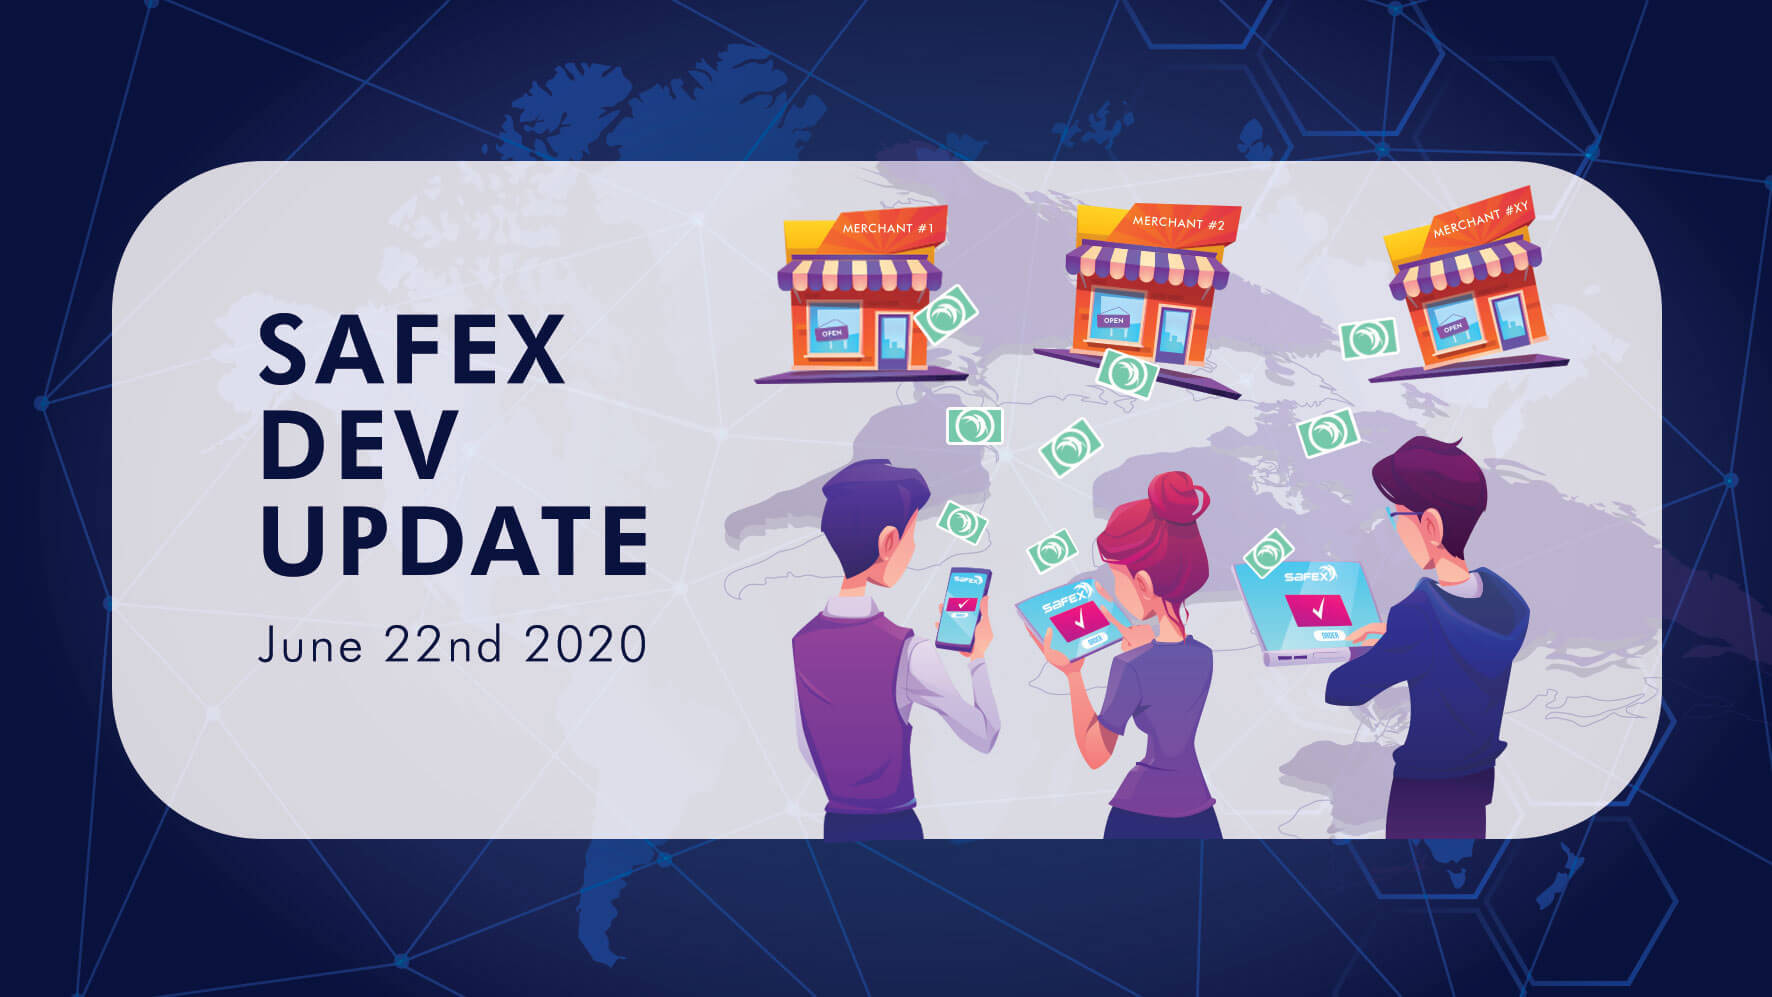 safex-update-buy-and-sell-on-safex-marketplace